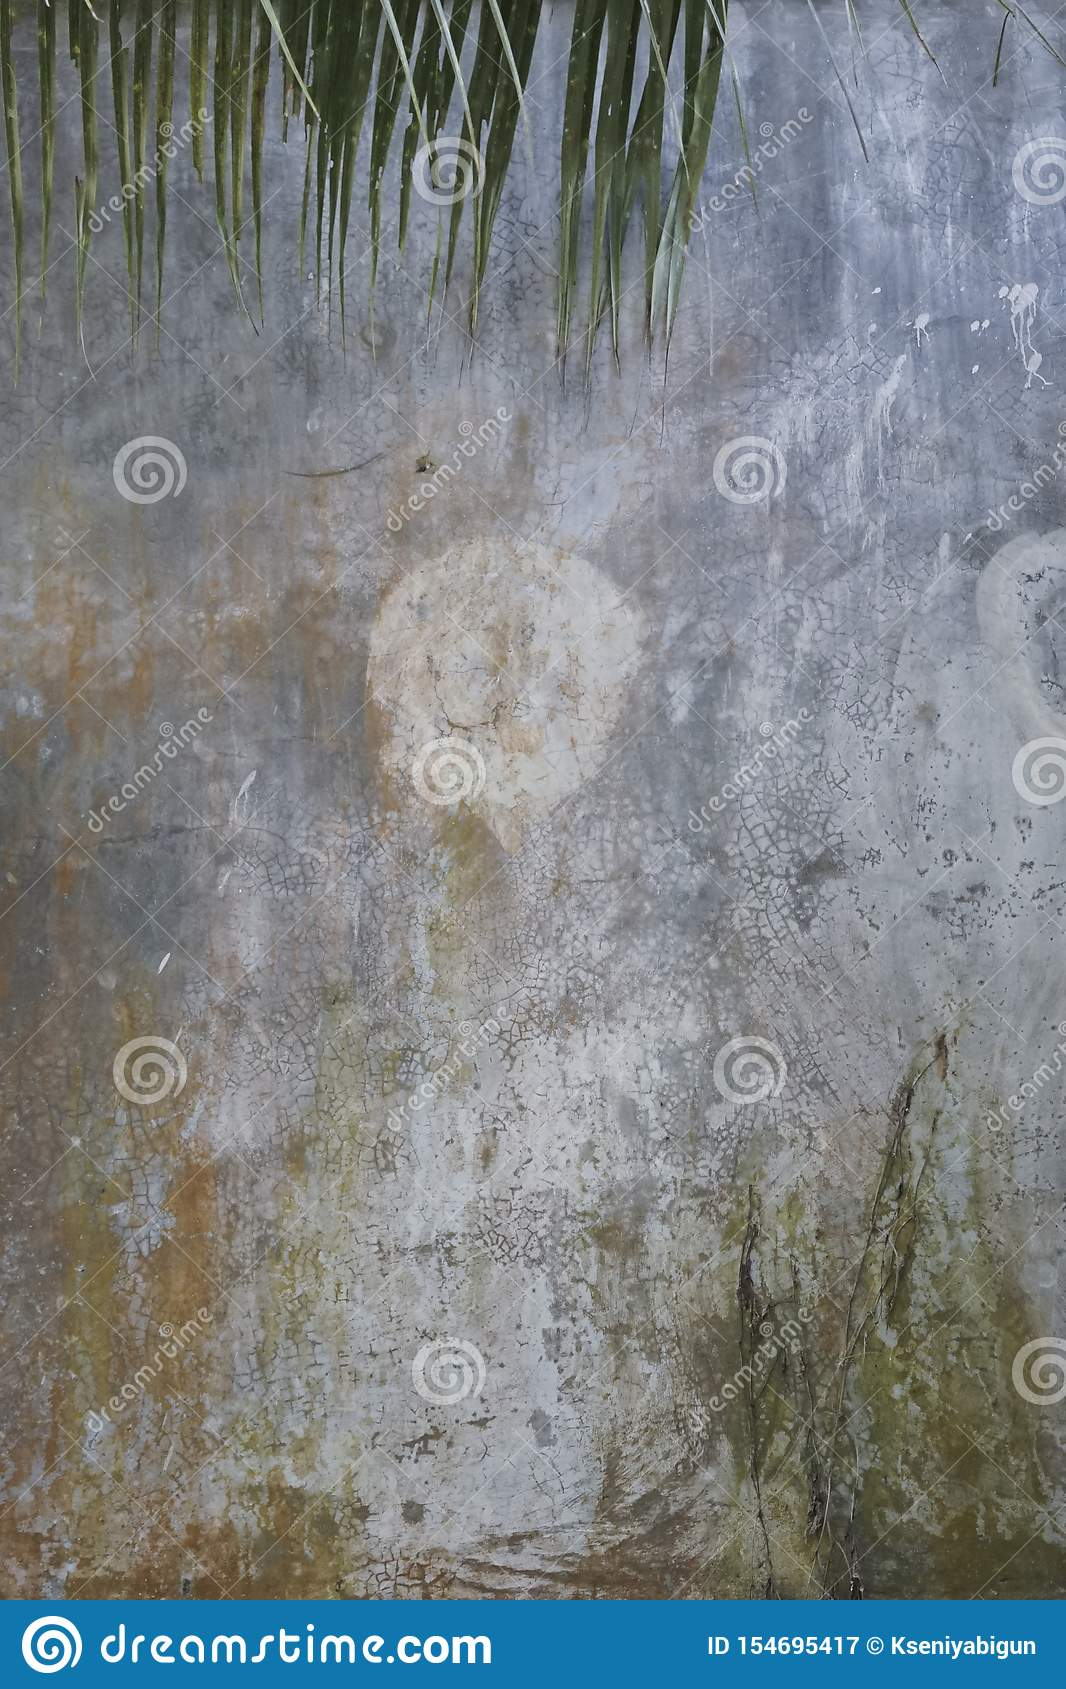 Cracked Concrete Vintage Wall Background Old Wall Beton Texture Stock Image Image Of Facade Beton 154695417